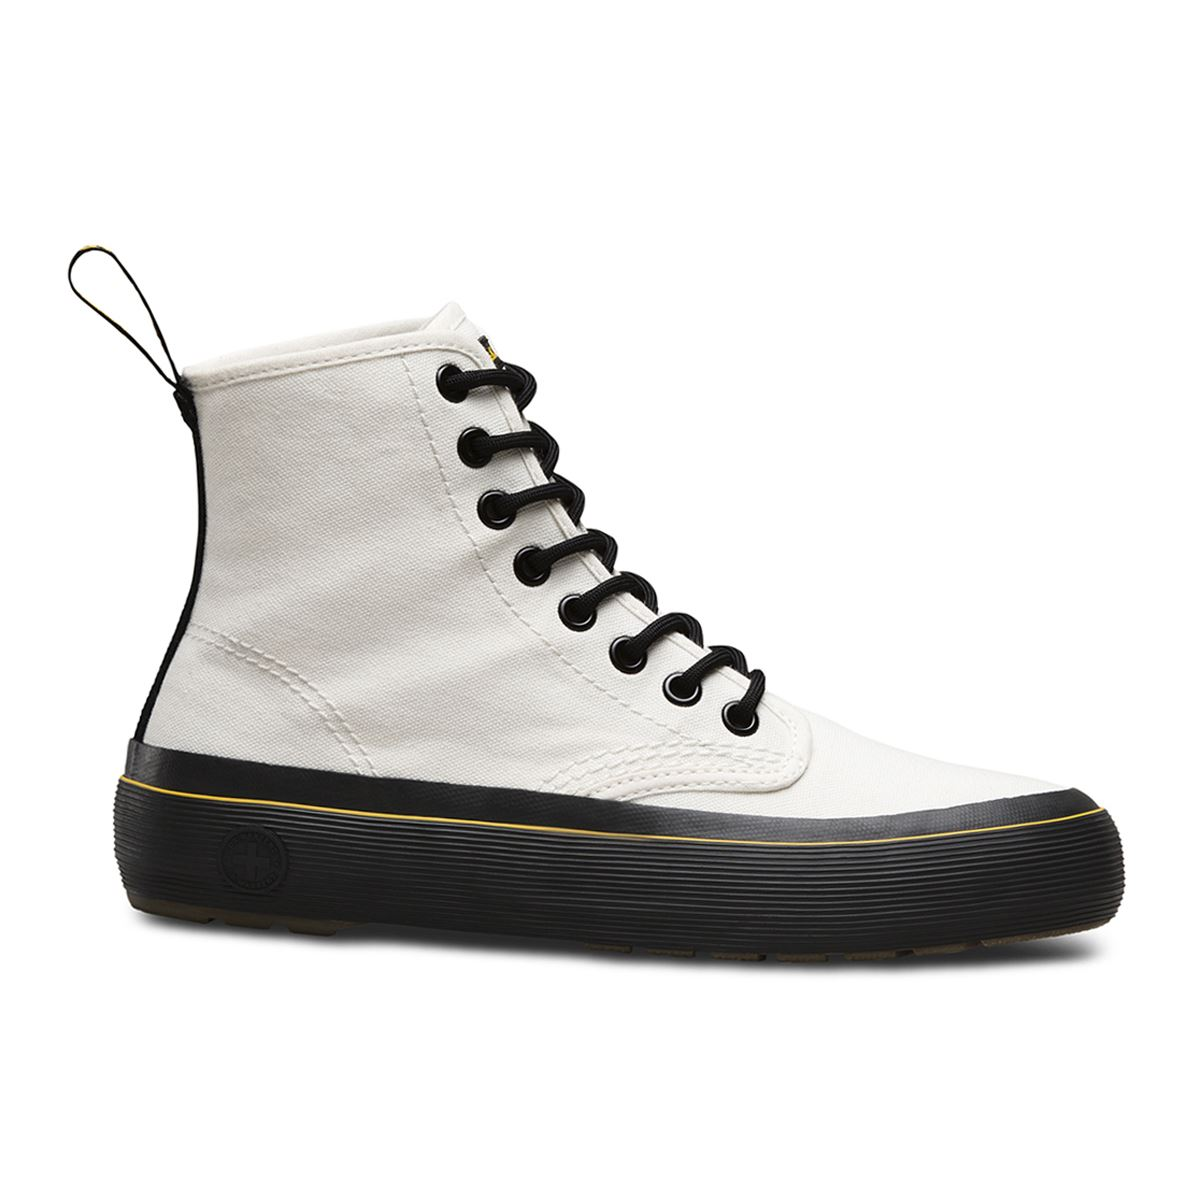 Dr.Martens Monet 8 Eyelet Canvas White Womens Boots